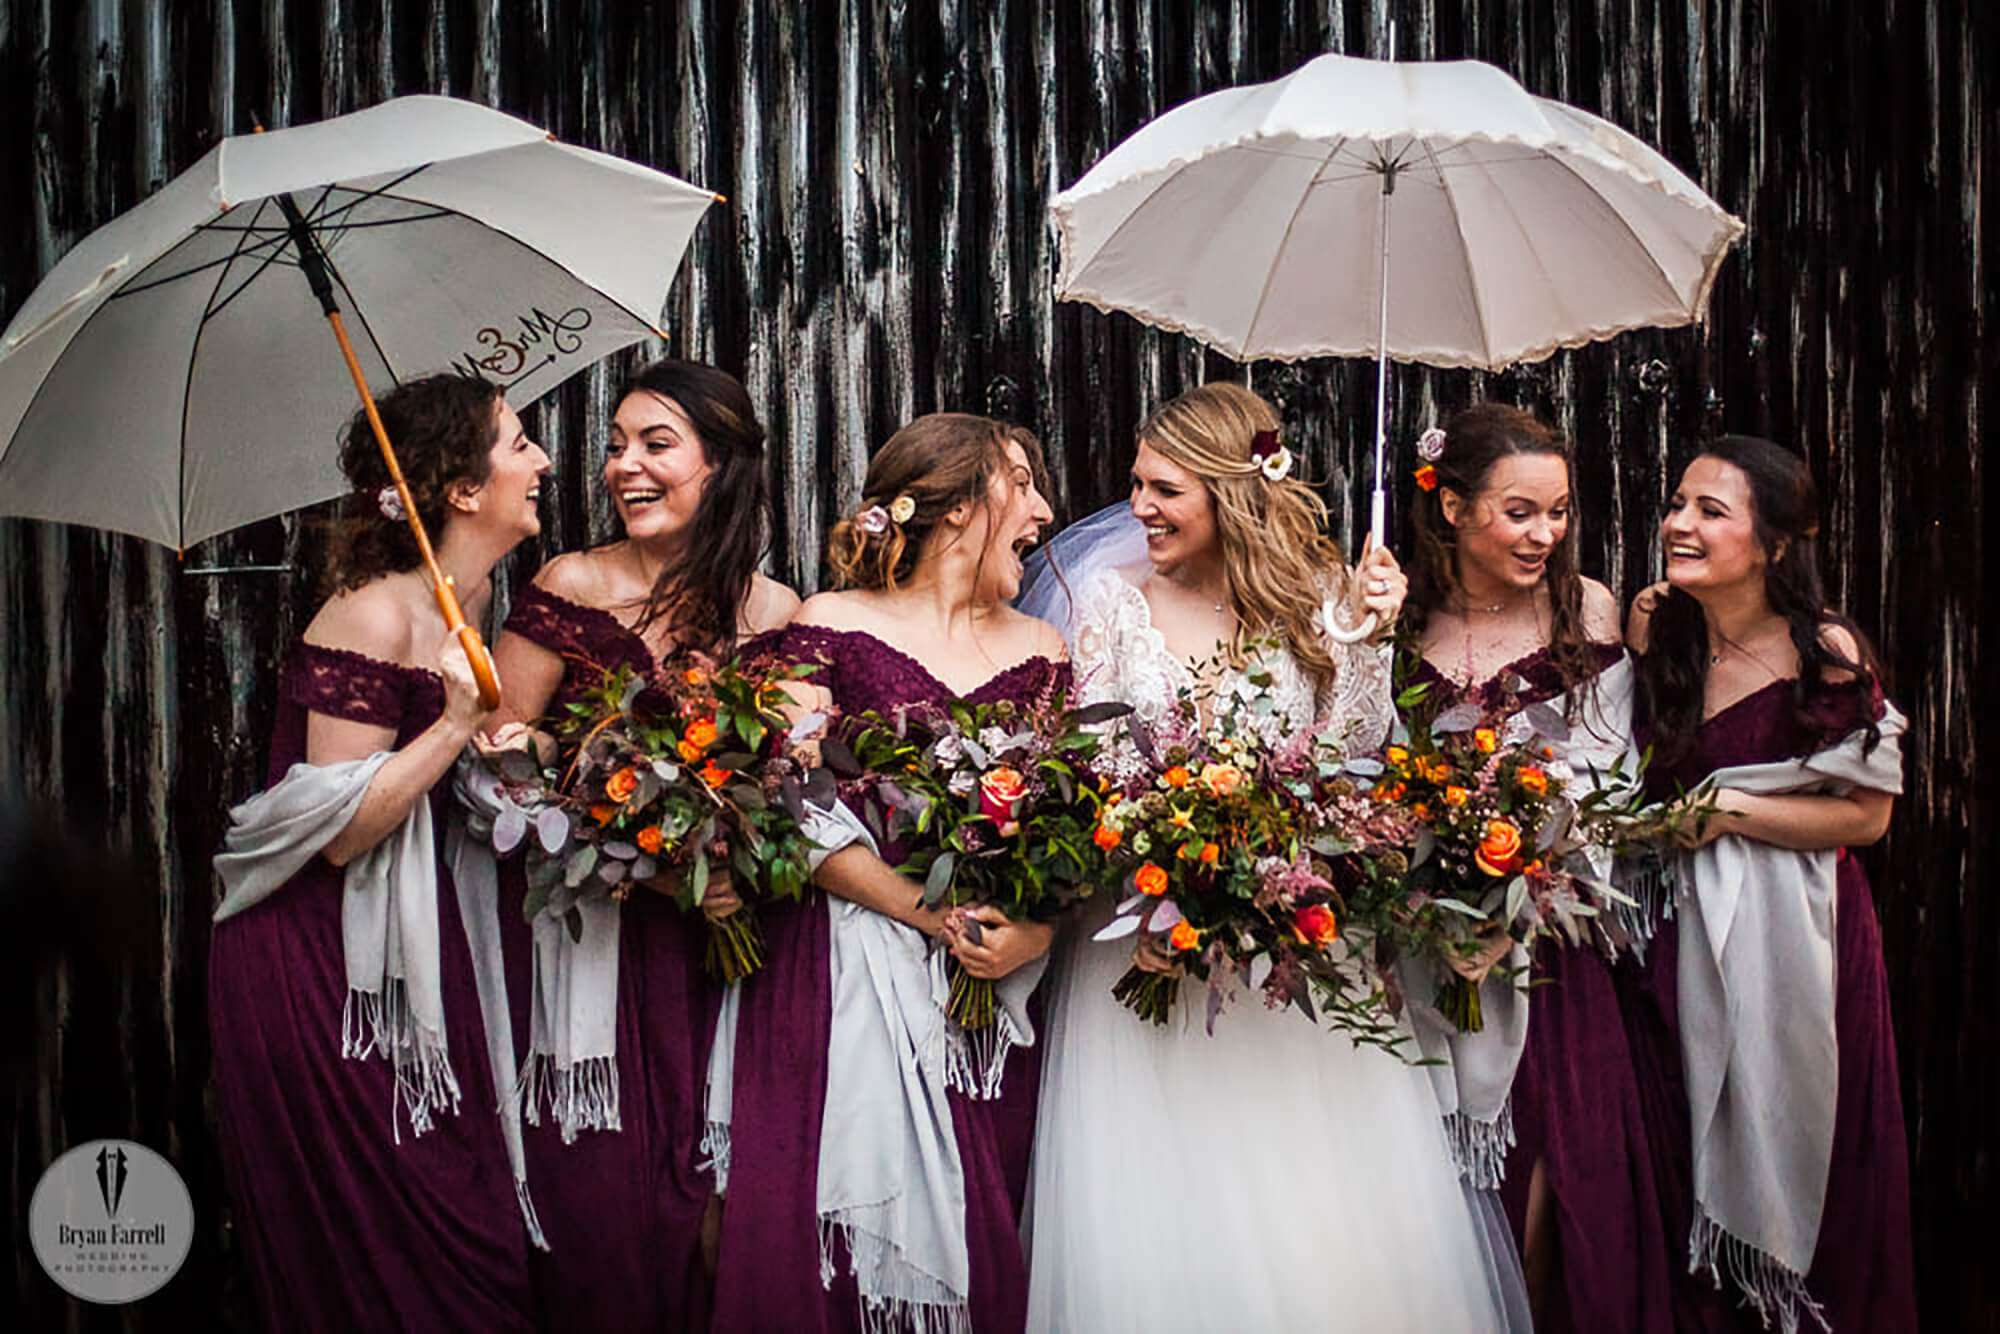 25 Wedding Tips From 25 Brides.